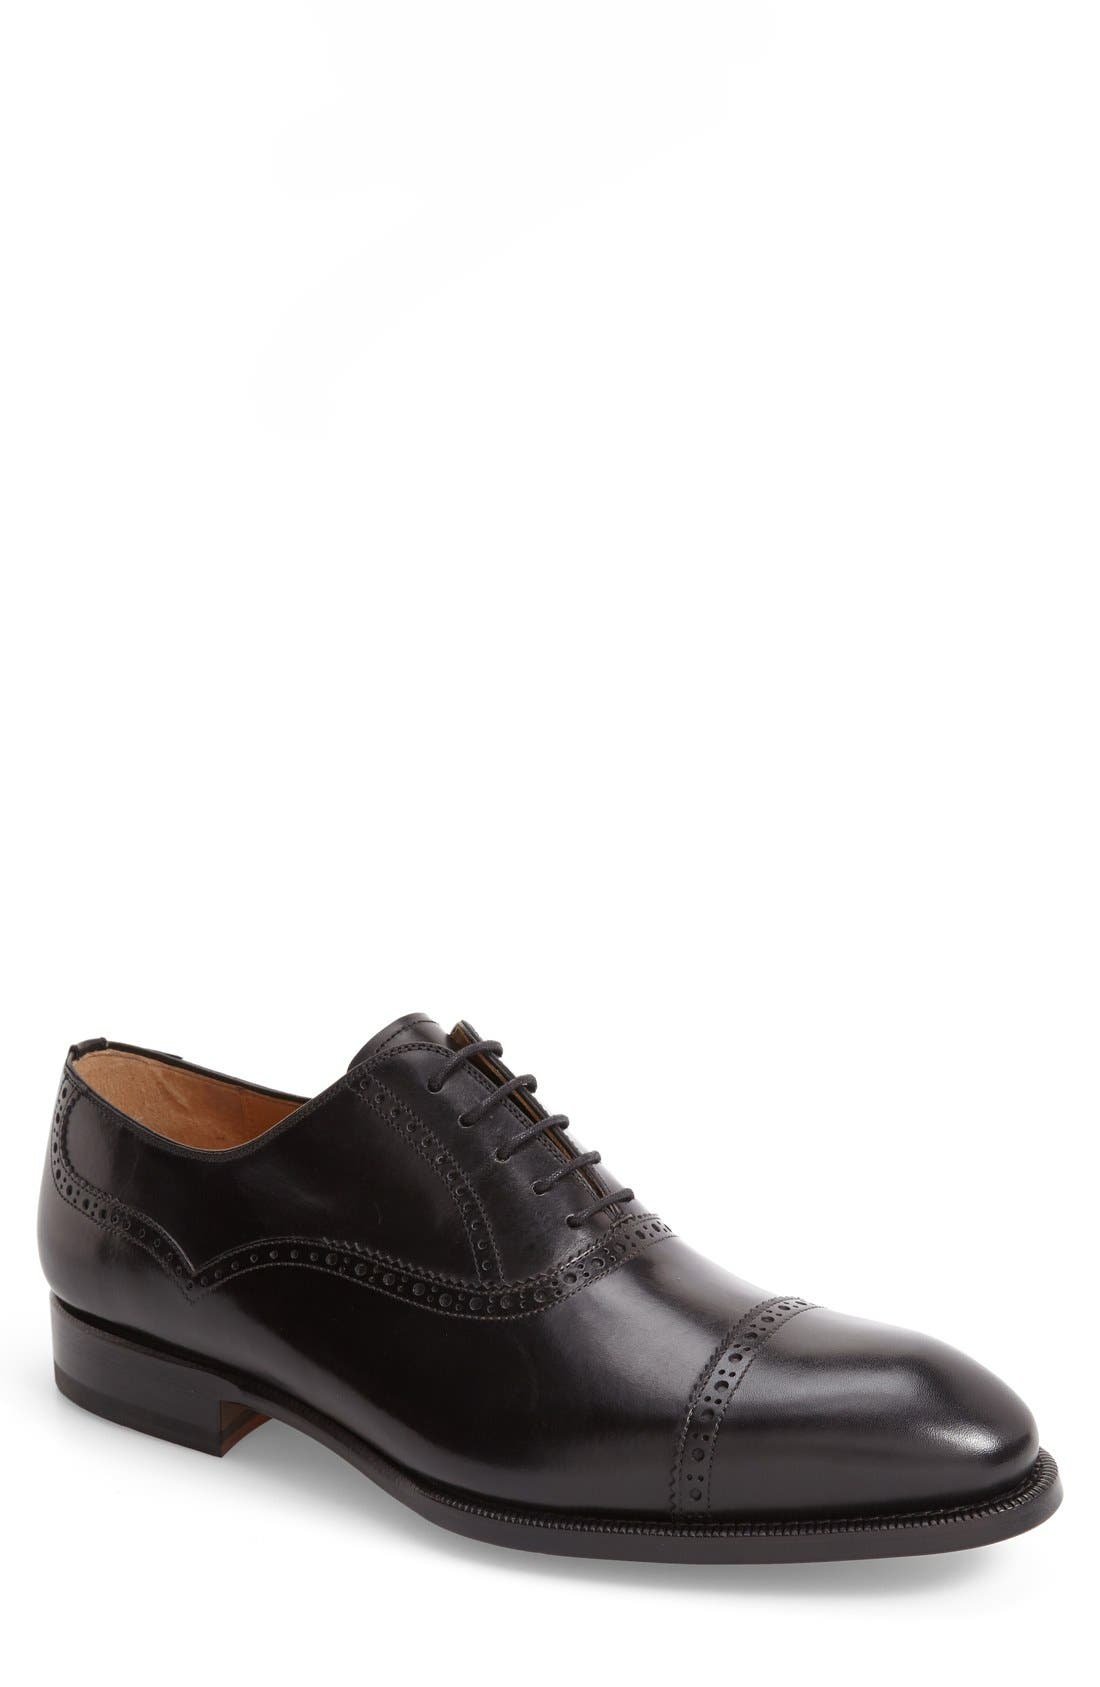 Magnanni 'Lamont' Cap Toe Oxford (Men)